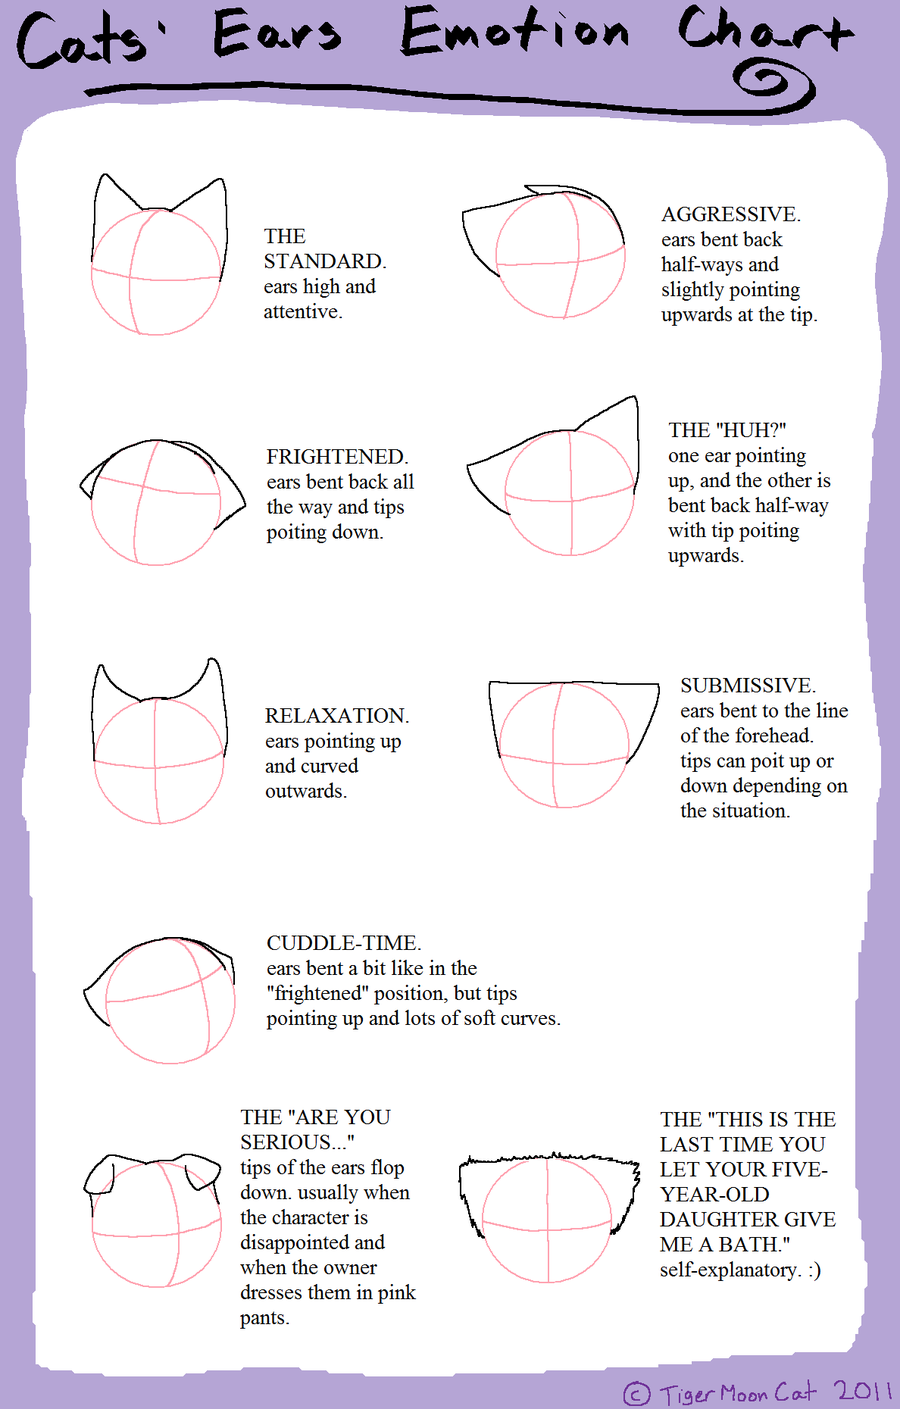 Cats Ears Emotion Chart By Tigermooncat On Deviantart Anime Cat Ears Furry Drawing Anime Drawings Tutorials